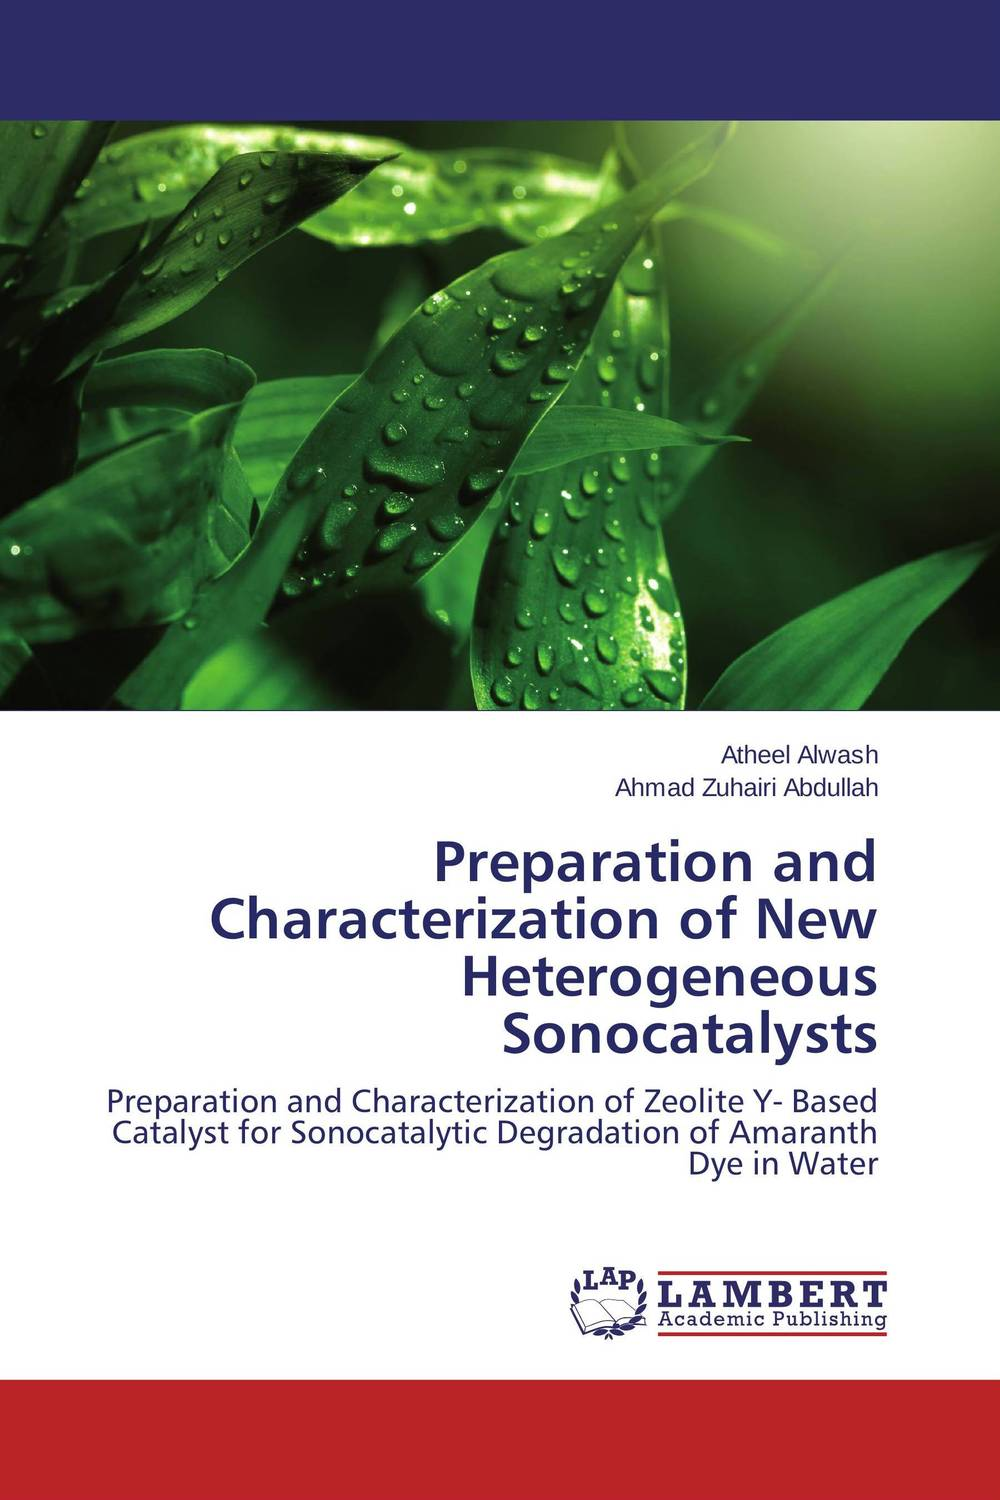 Preparation and Characterization of New Heterogeneous Sonocatalysts sonali singh sunil kumar prajapati and rahul pratap singh preparation and characterization of prednisolone loaded microsponges